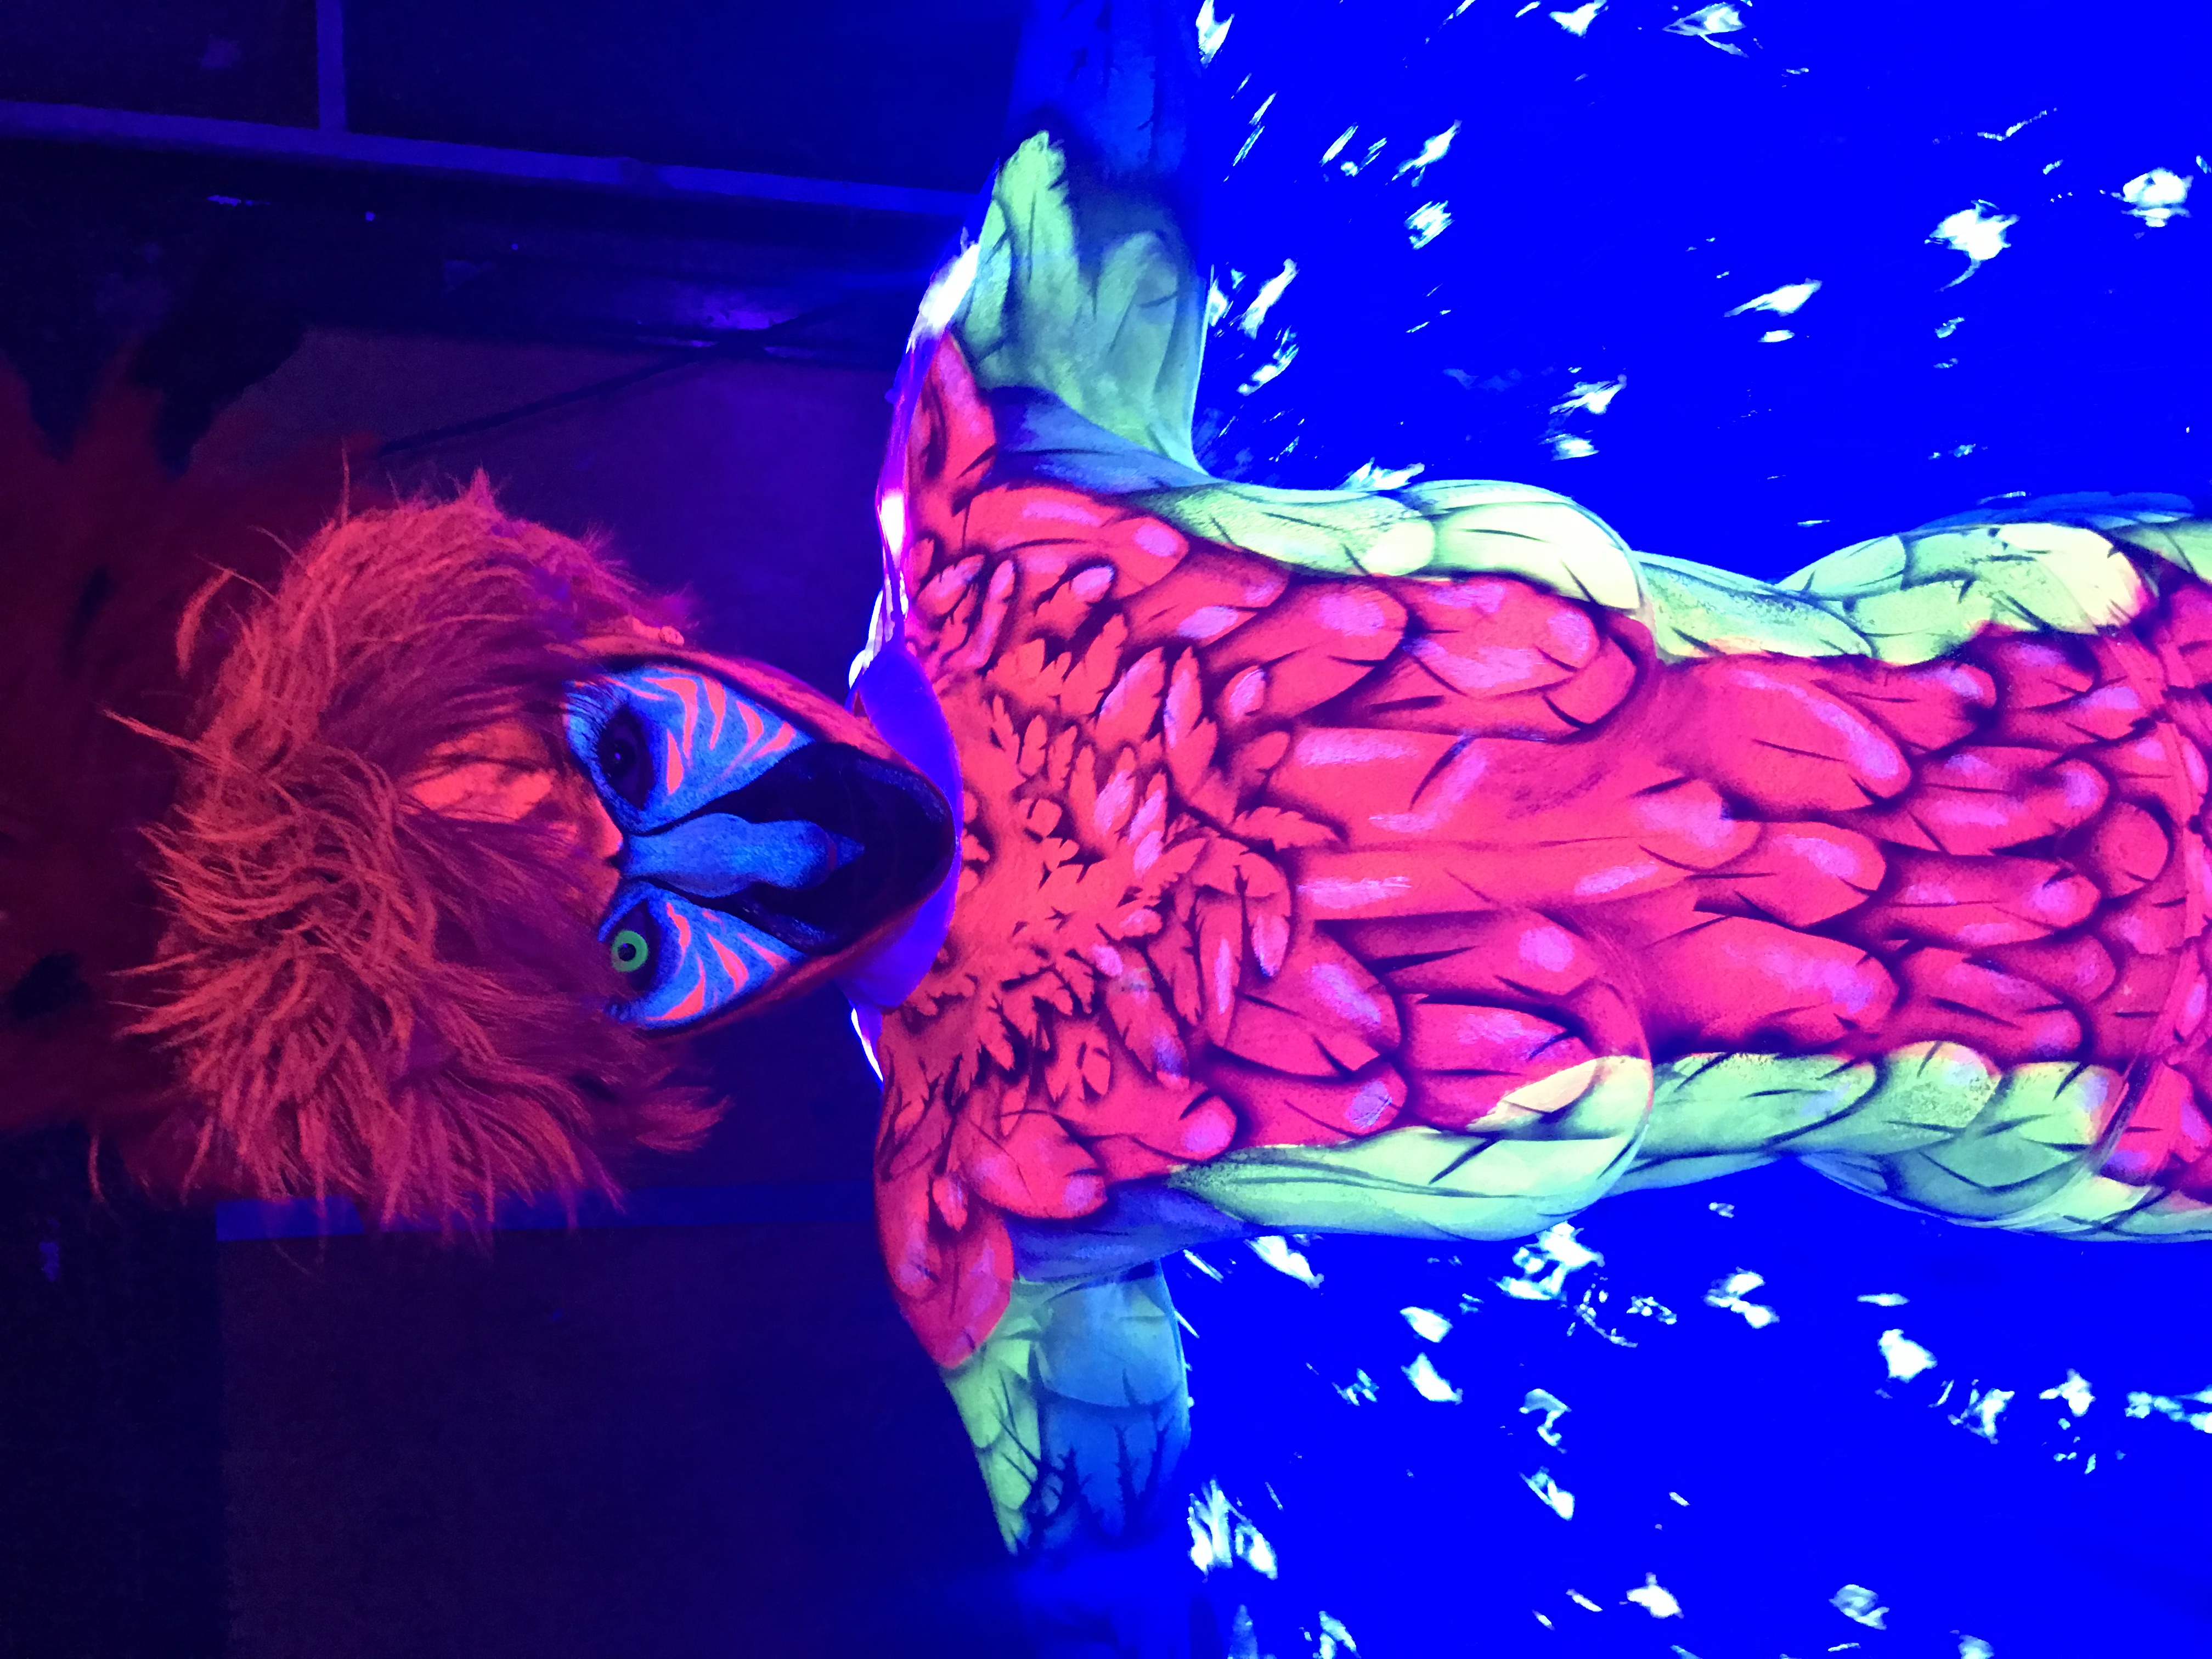 Parrot Body Painting - UV Neon Paint